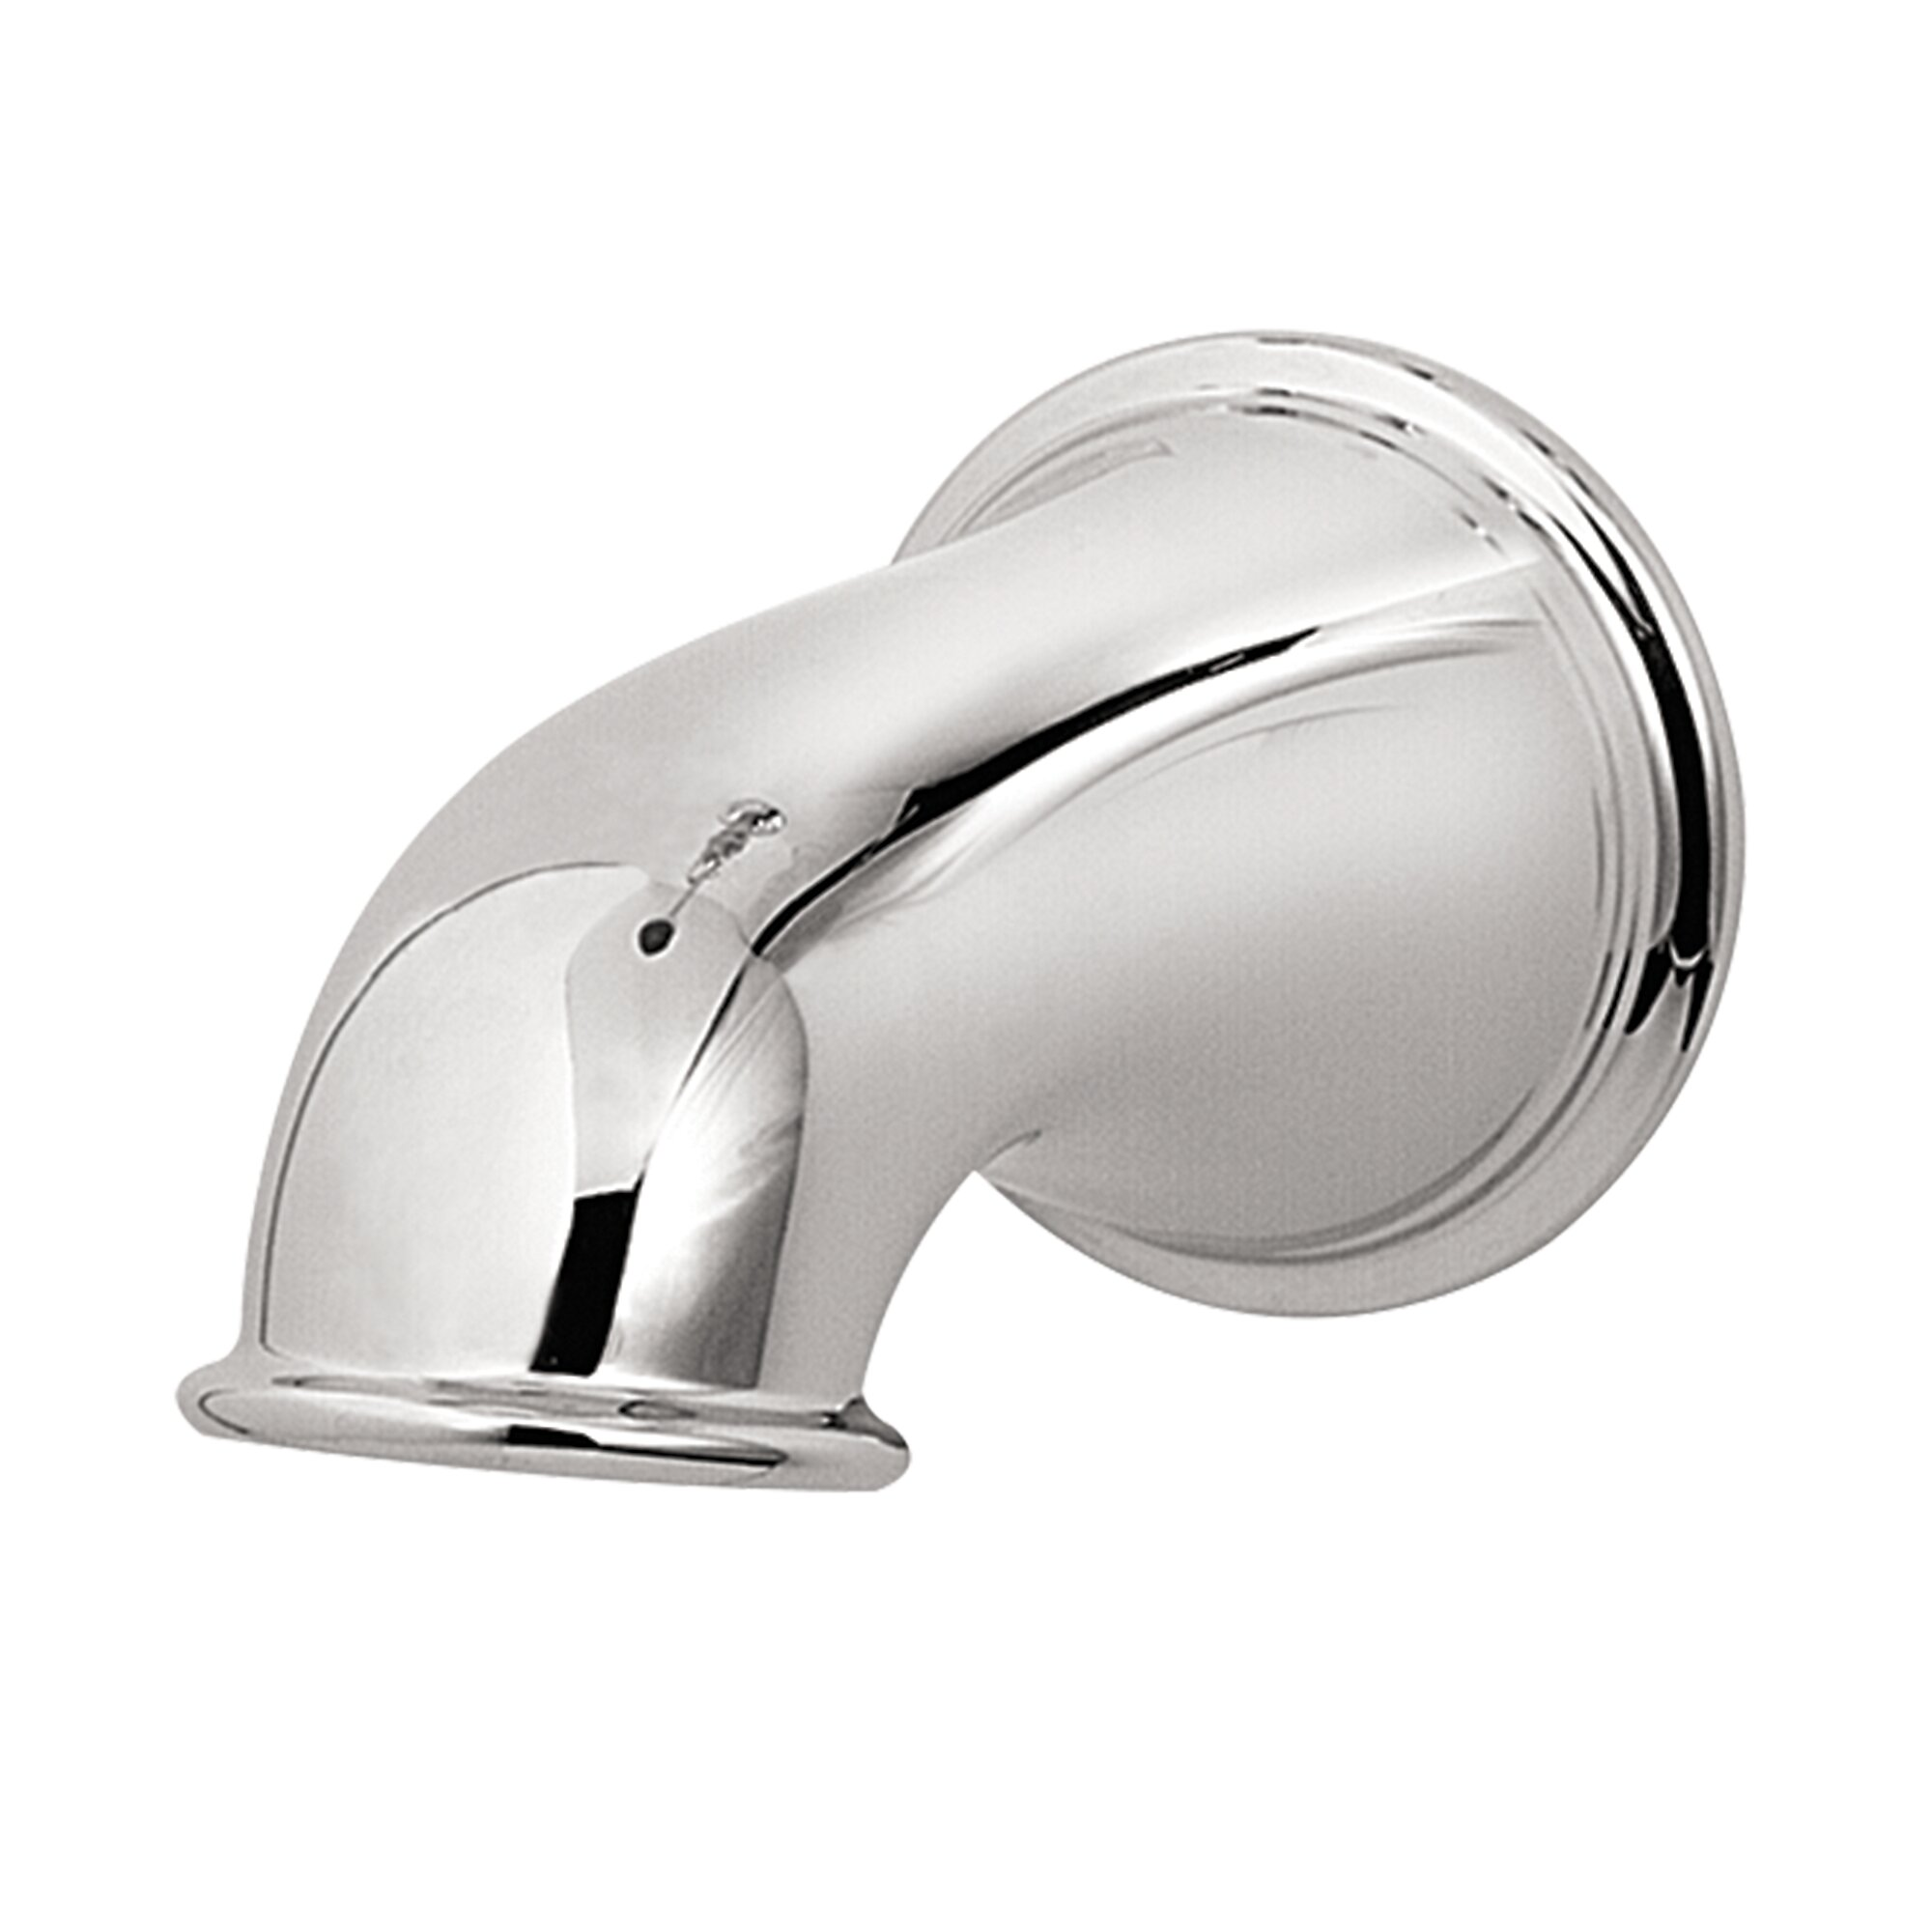 pfister 920 022 treviso 5 inch wall mount tub spout without diverter